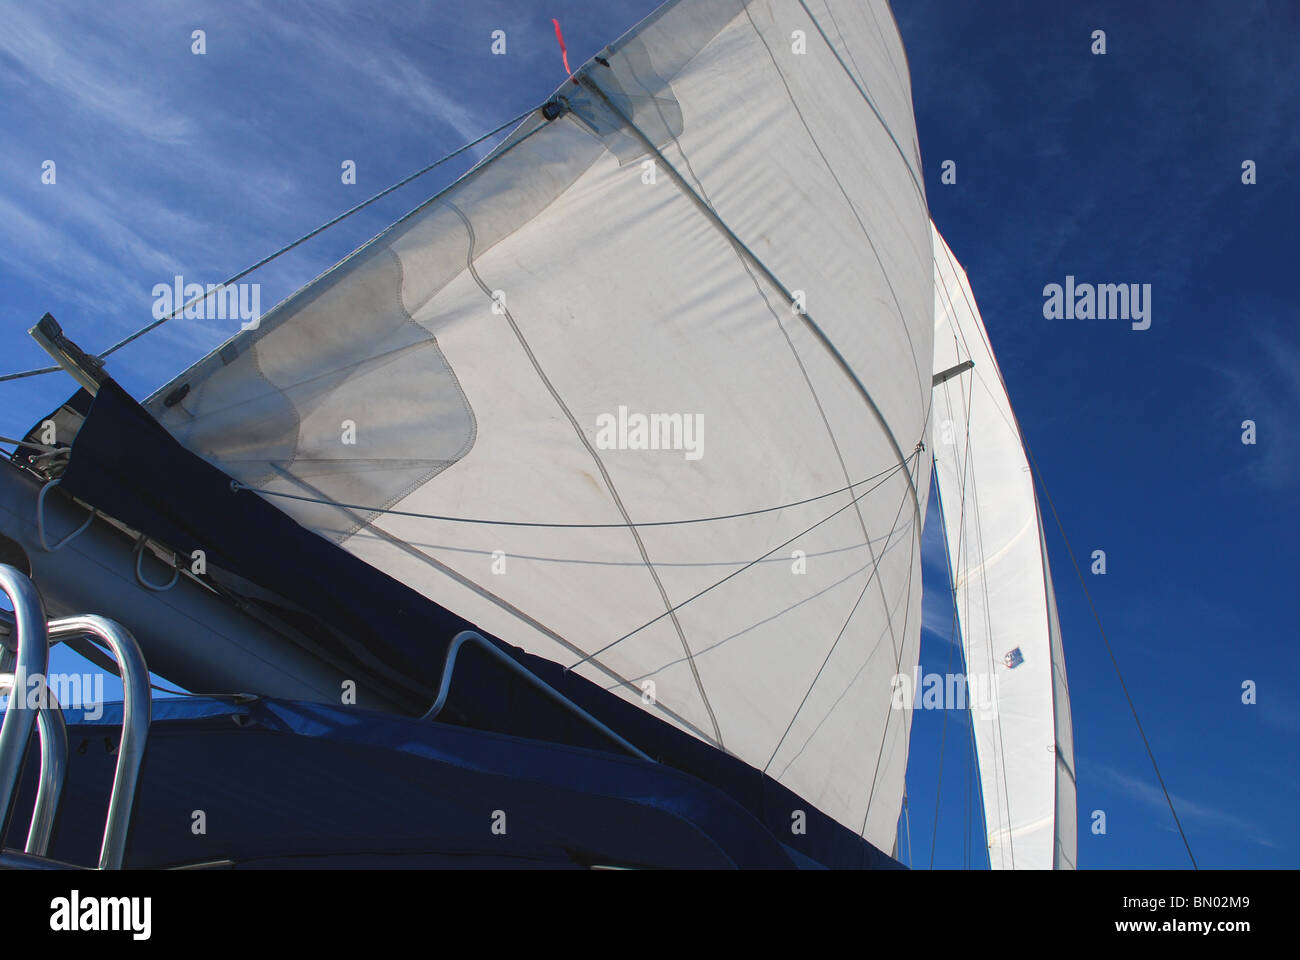 Mainsail in the Wind, Gulf of Mexico, Florida - Stock Image